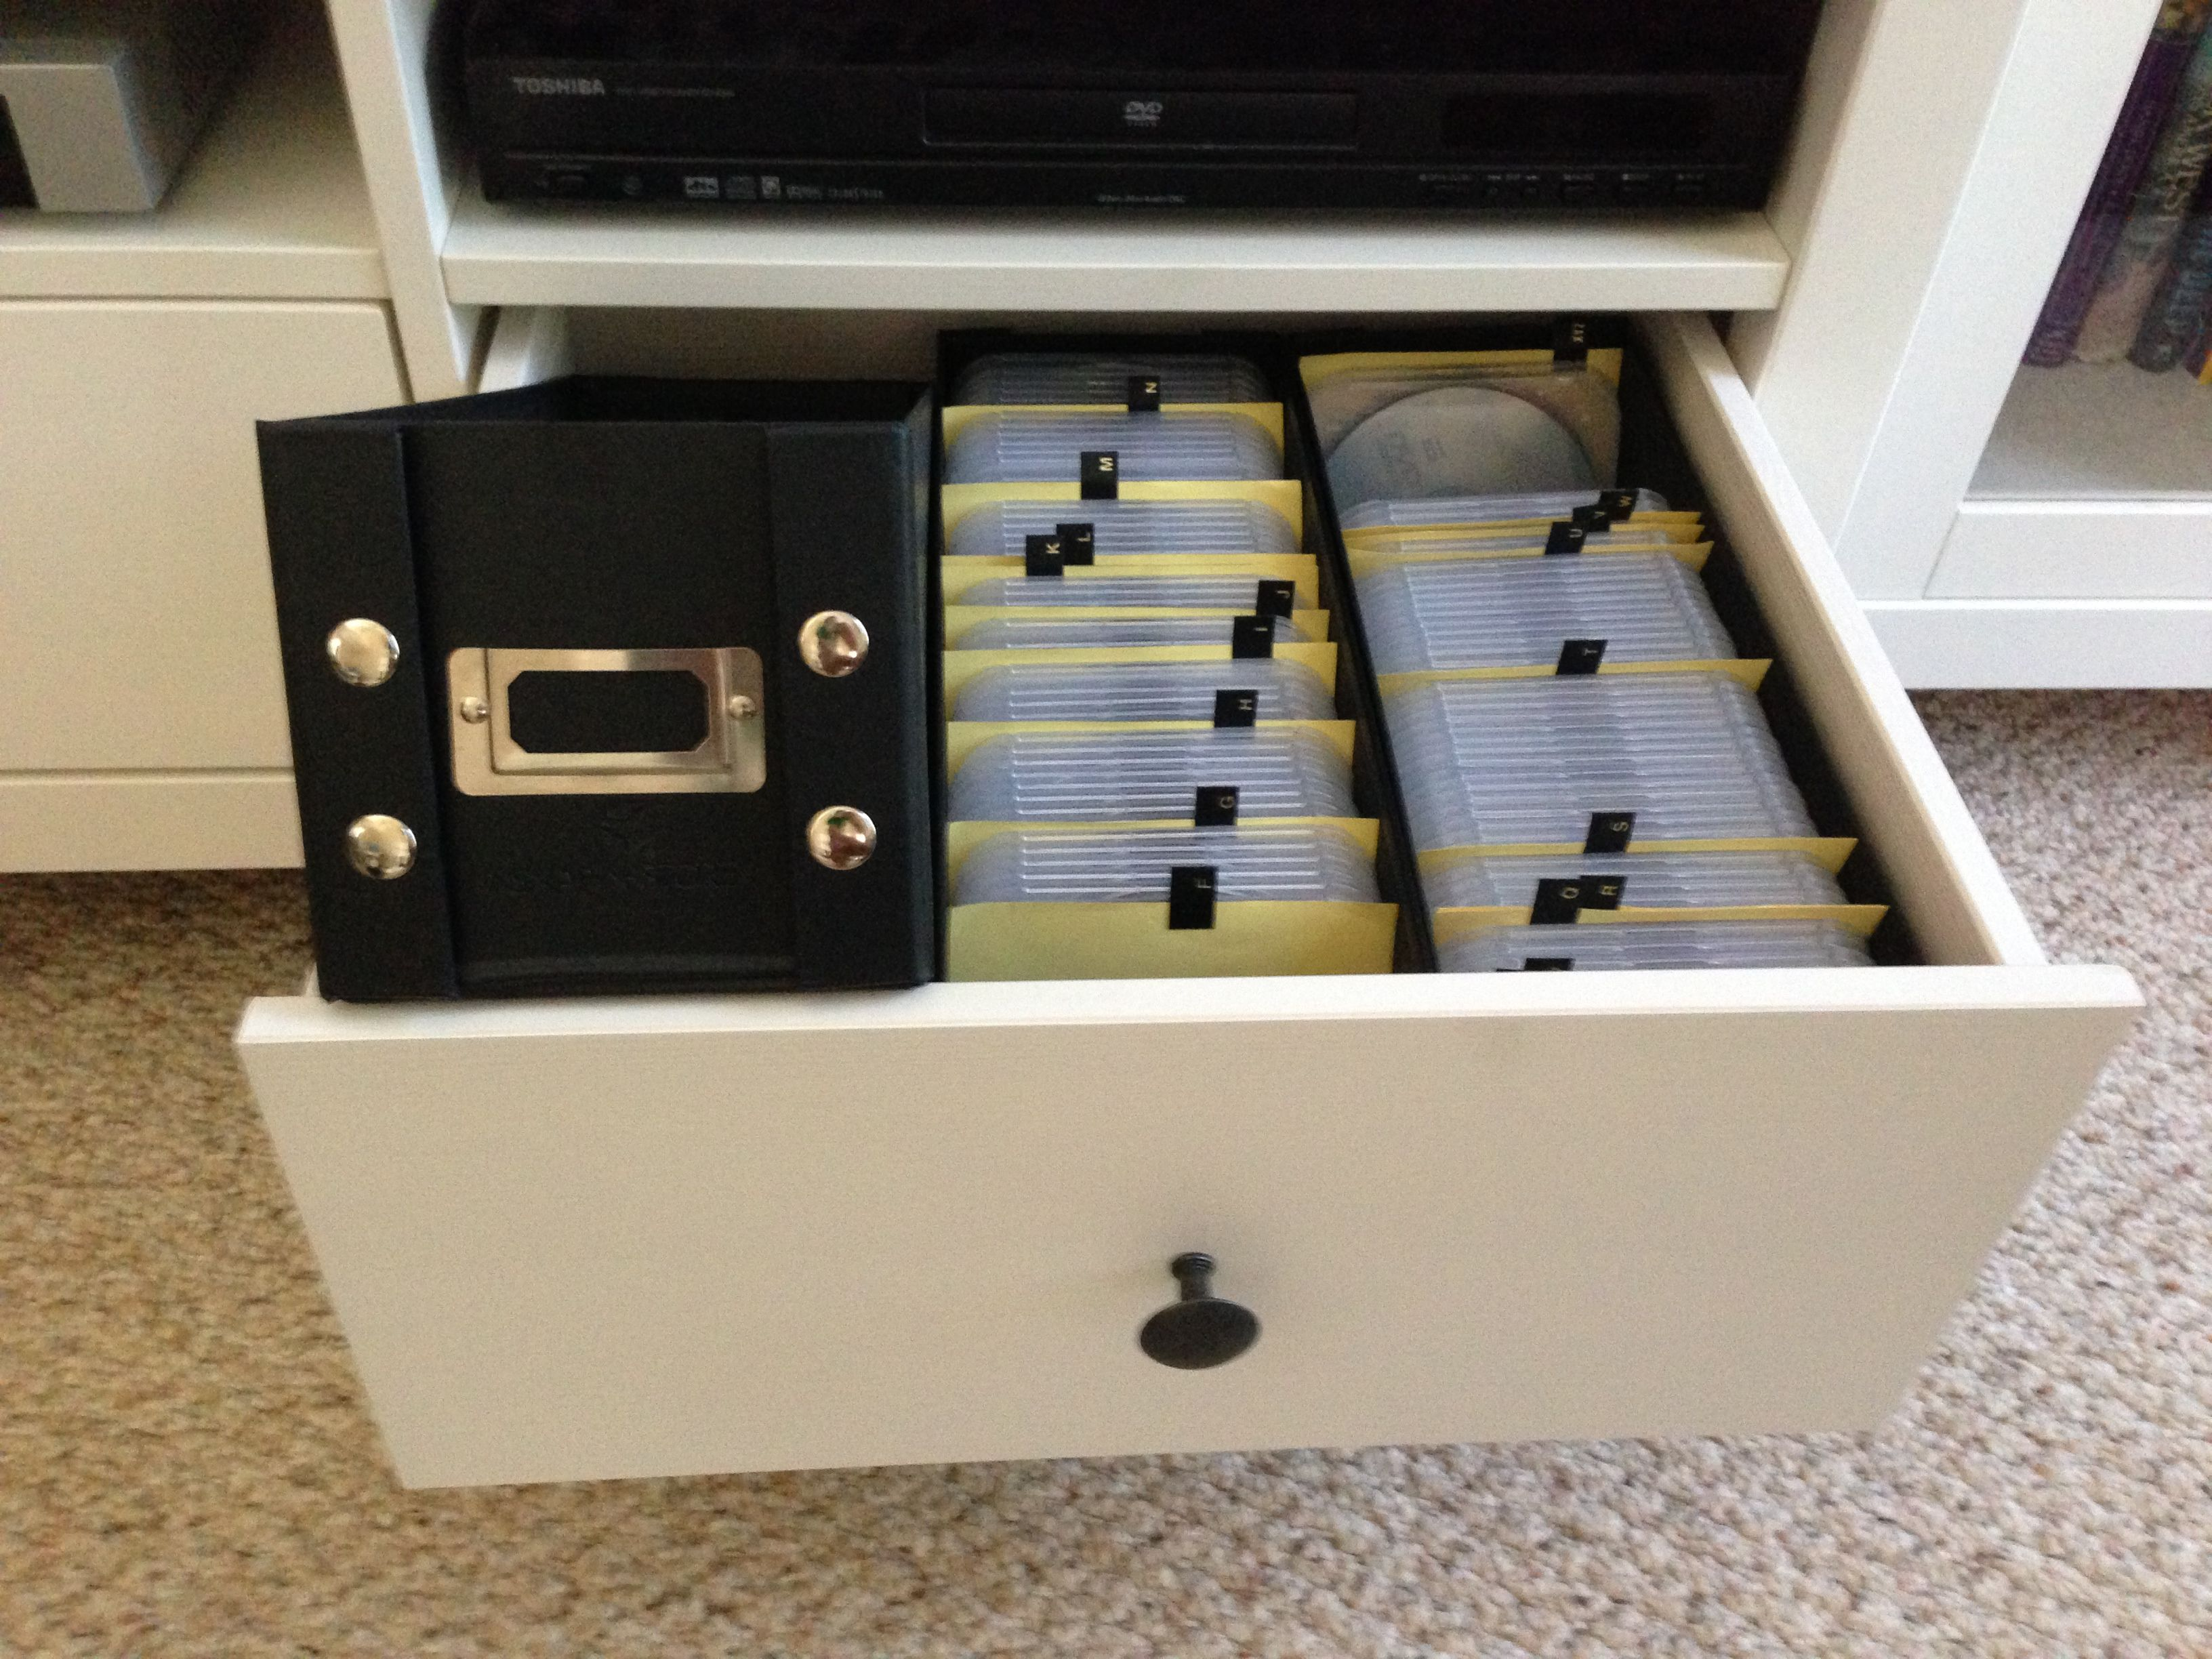 snap and store cd storage boxes on amazon 3 fit perfectly in ikea entertainment center drawers. Black Bedroom Furniture Sets. Home Design Ideas